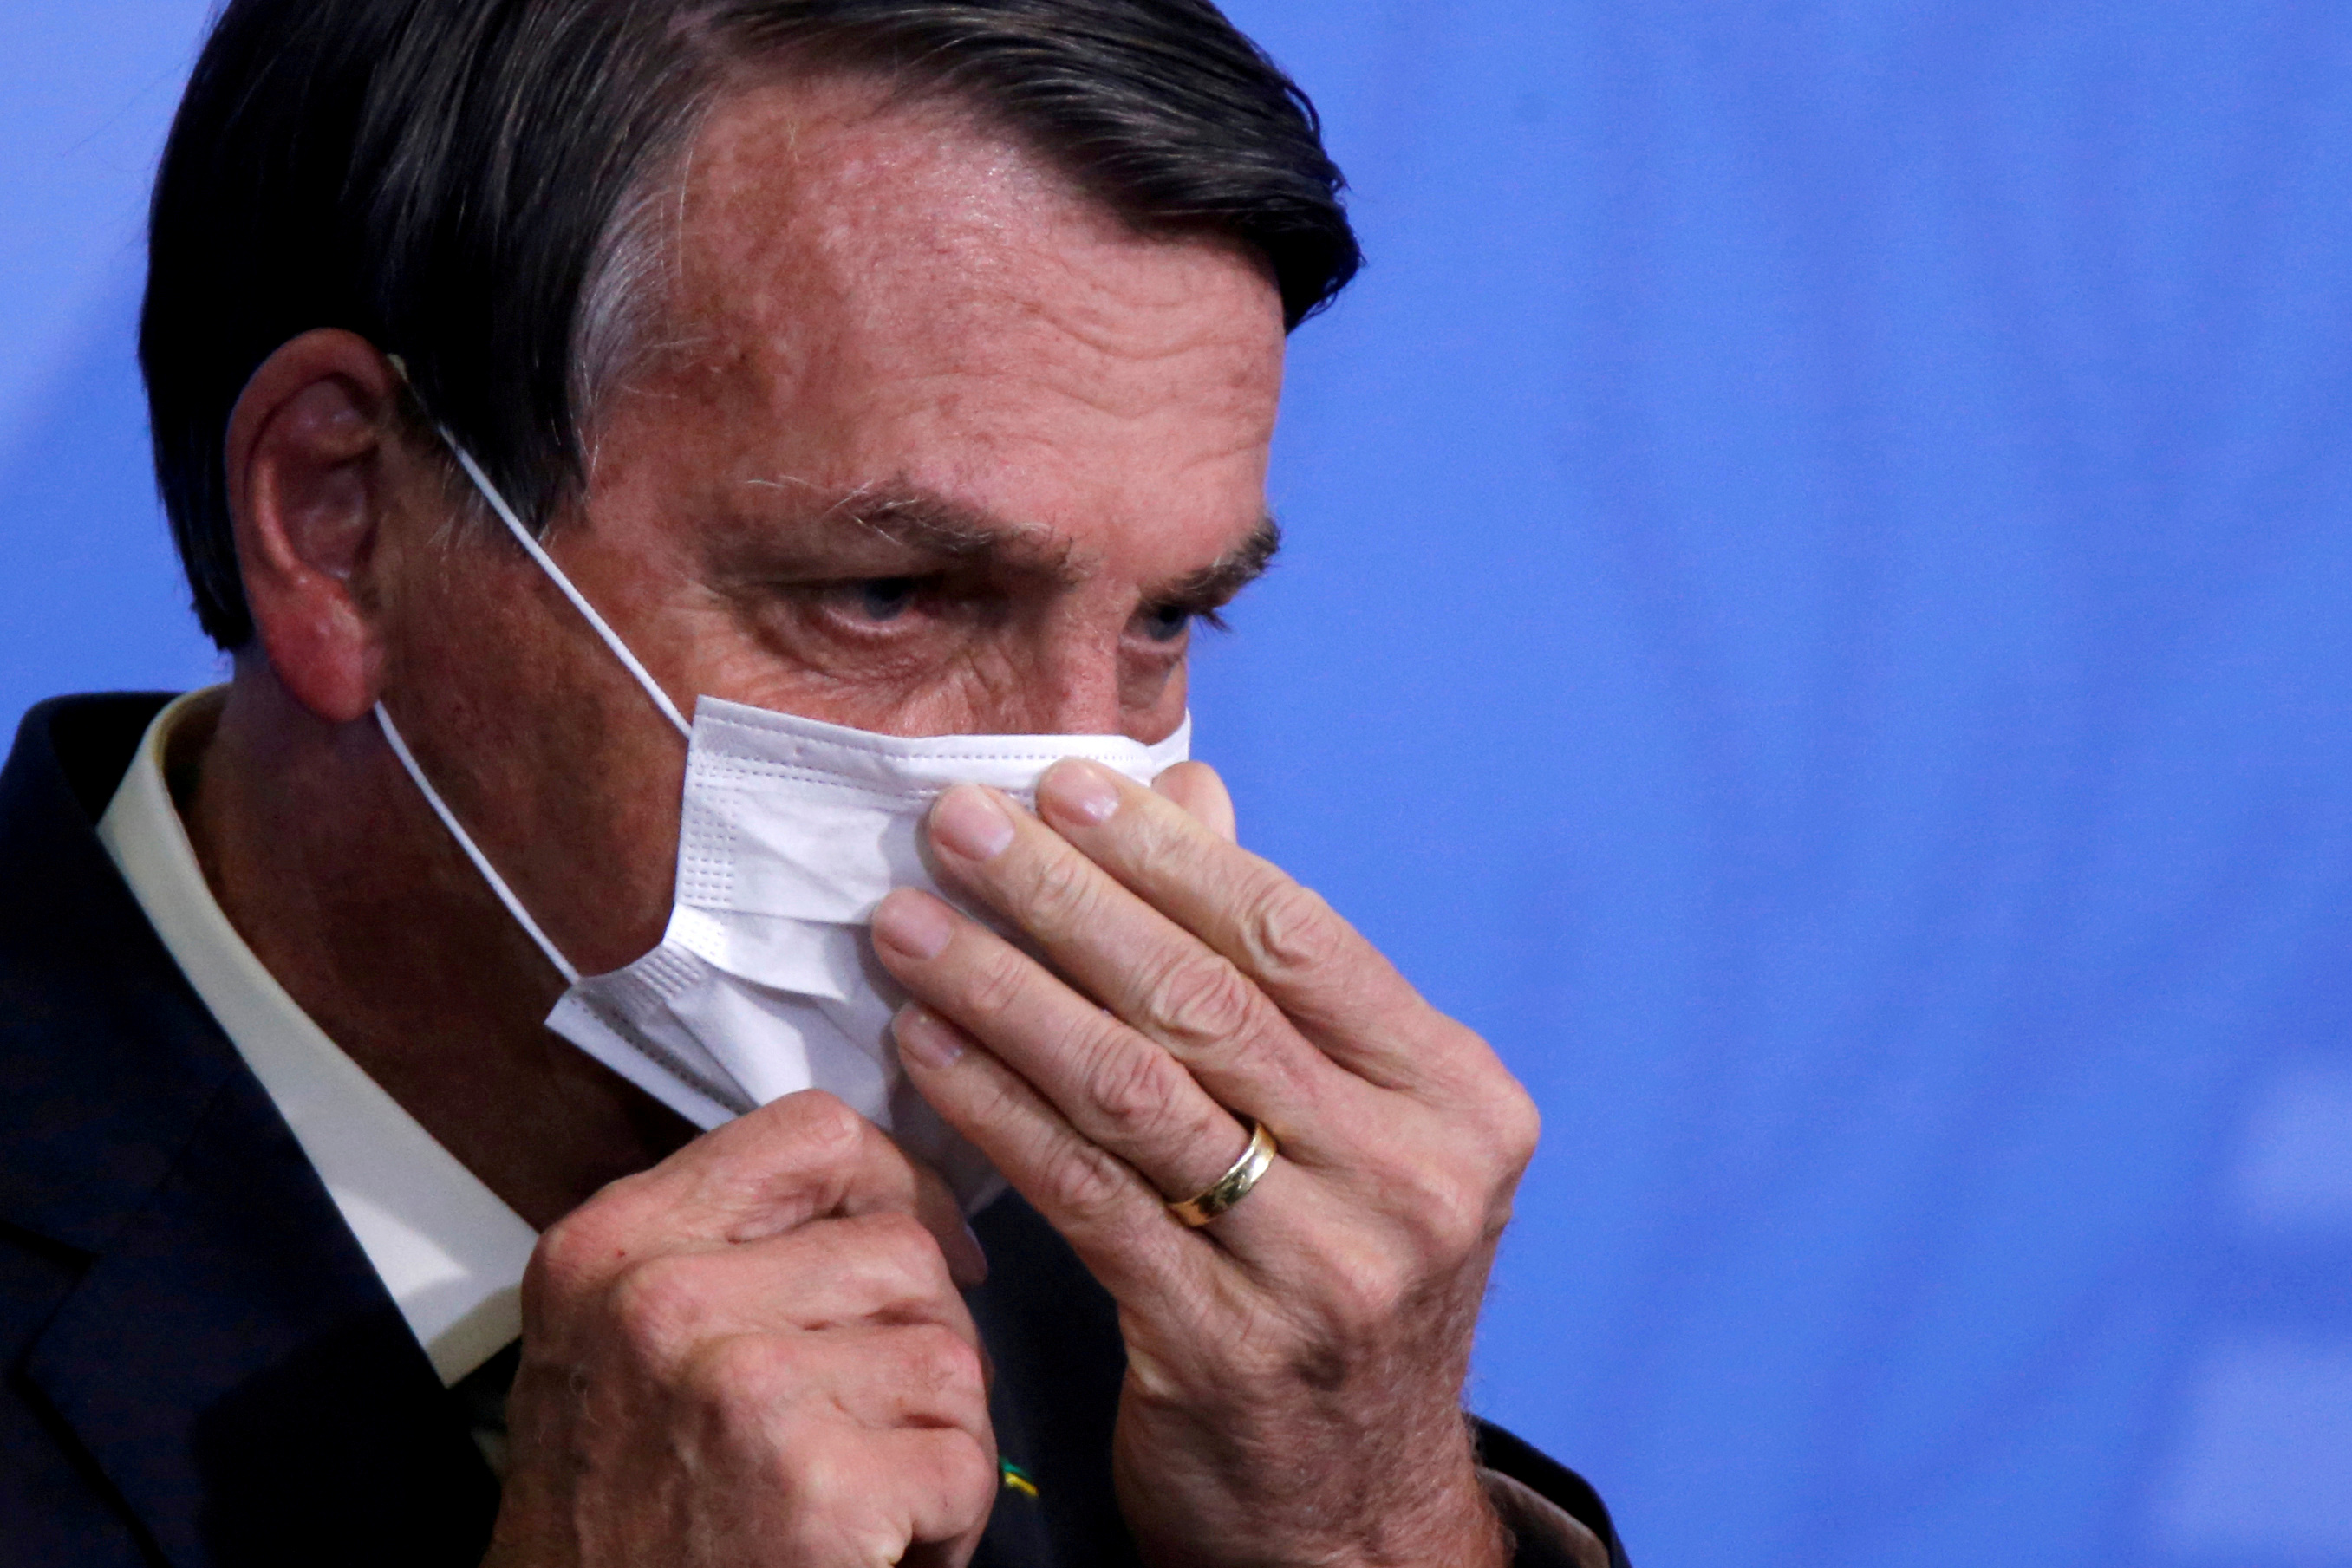 Brazil President Jair Bolsonaro looks on as he adjusts his protective face mask during a ceremony launching a program to expand access to credit at the Planalto Palace in Brasilia, Brazil, August 19, 2020. REUTERS/Adriano Machado//File Photo